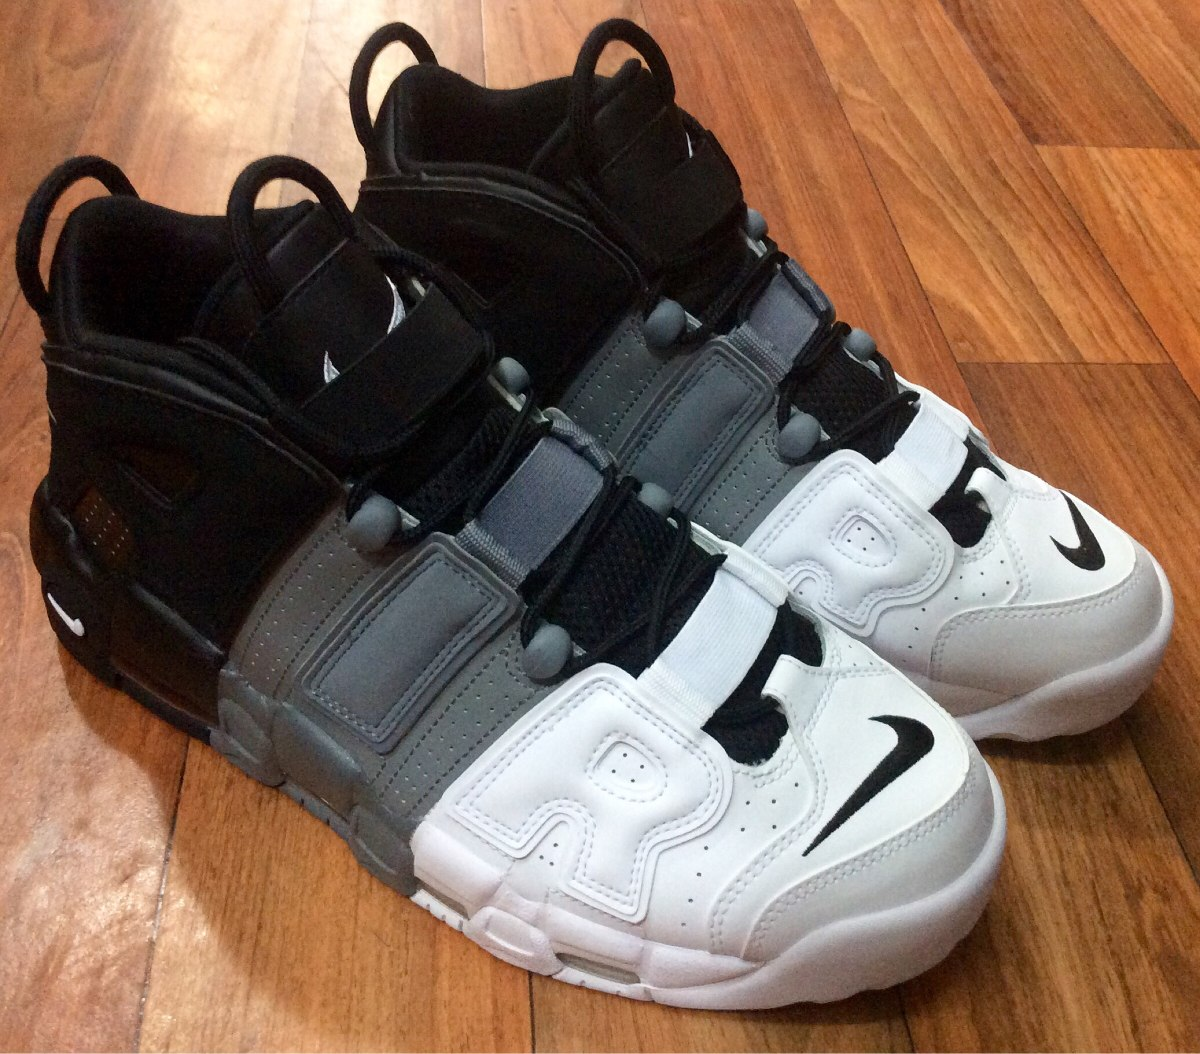 Zapatilla Nike Air Uptempo Tricolor Scottie Pippen -   16.499 9252055fd